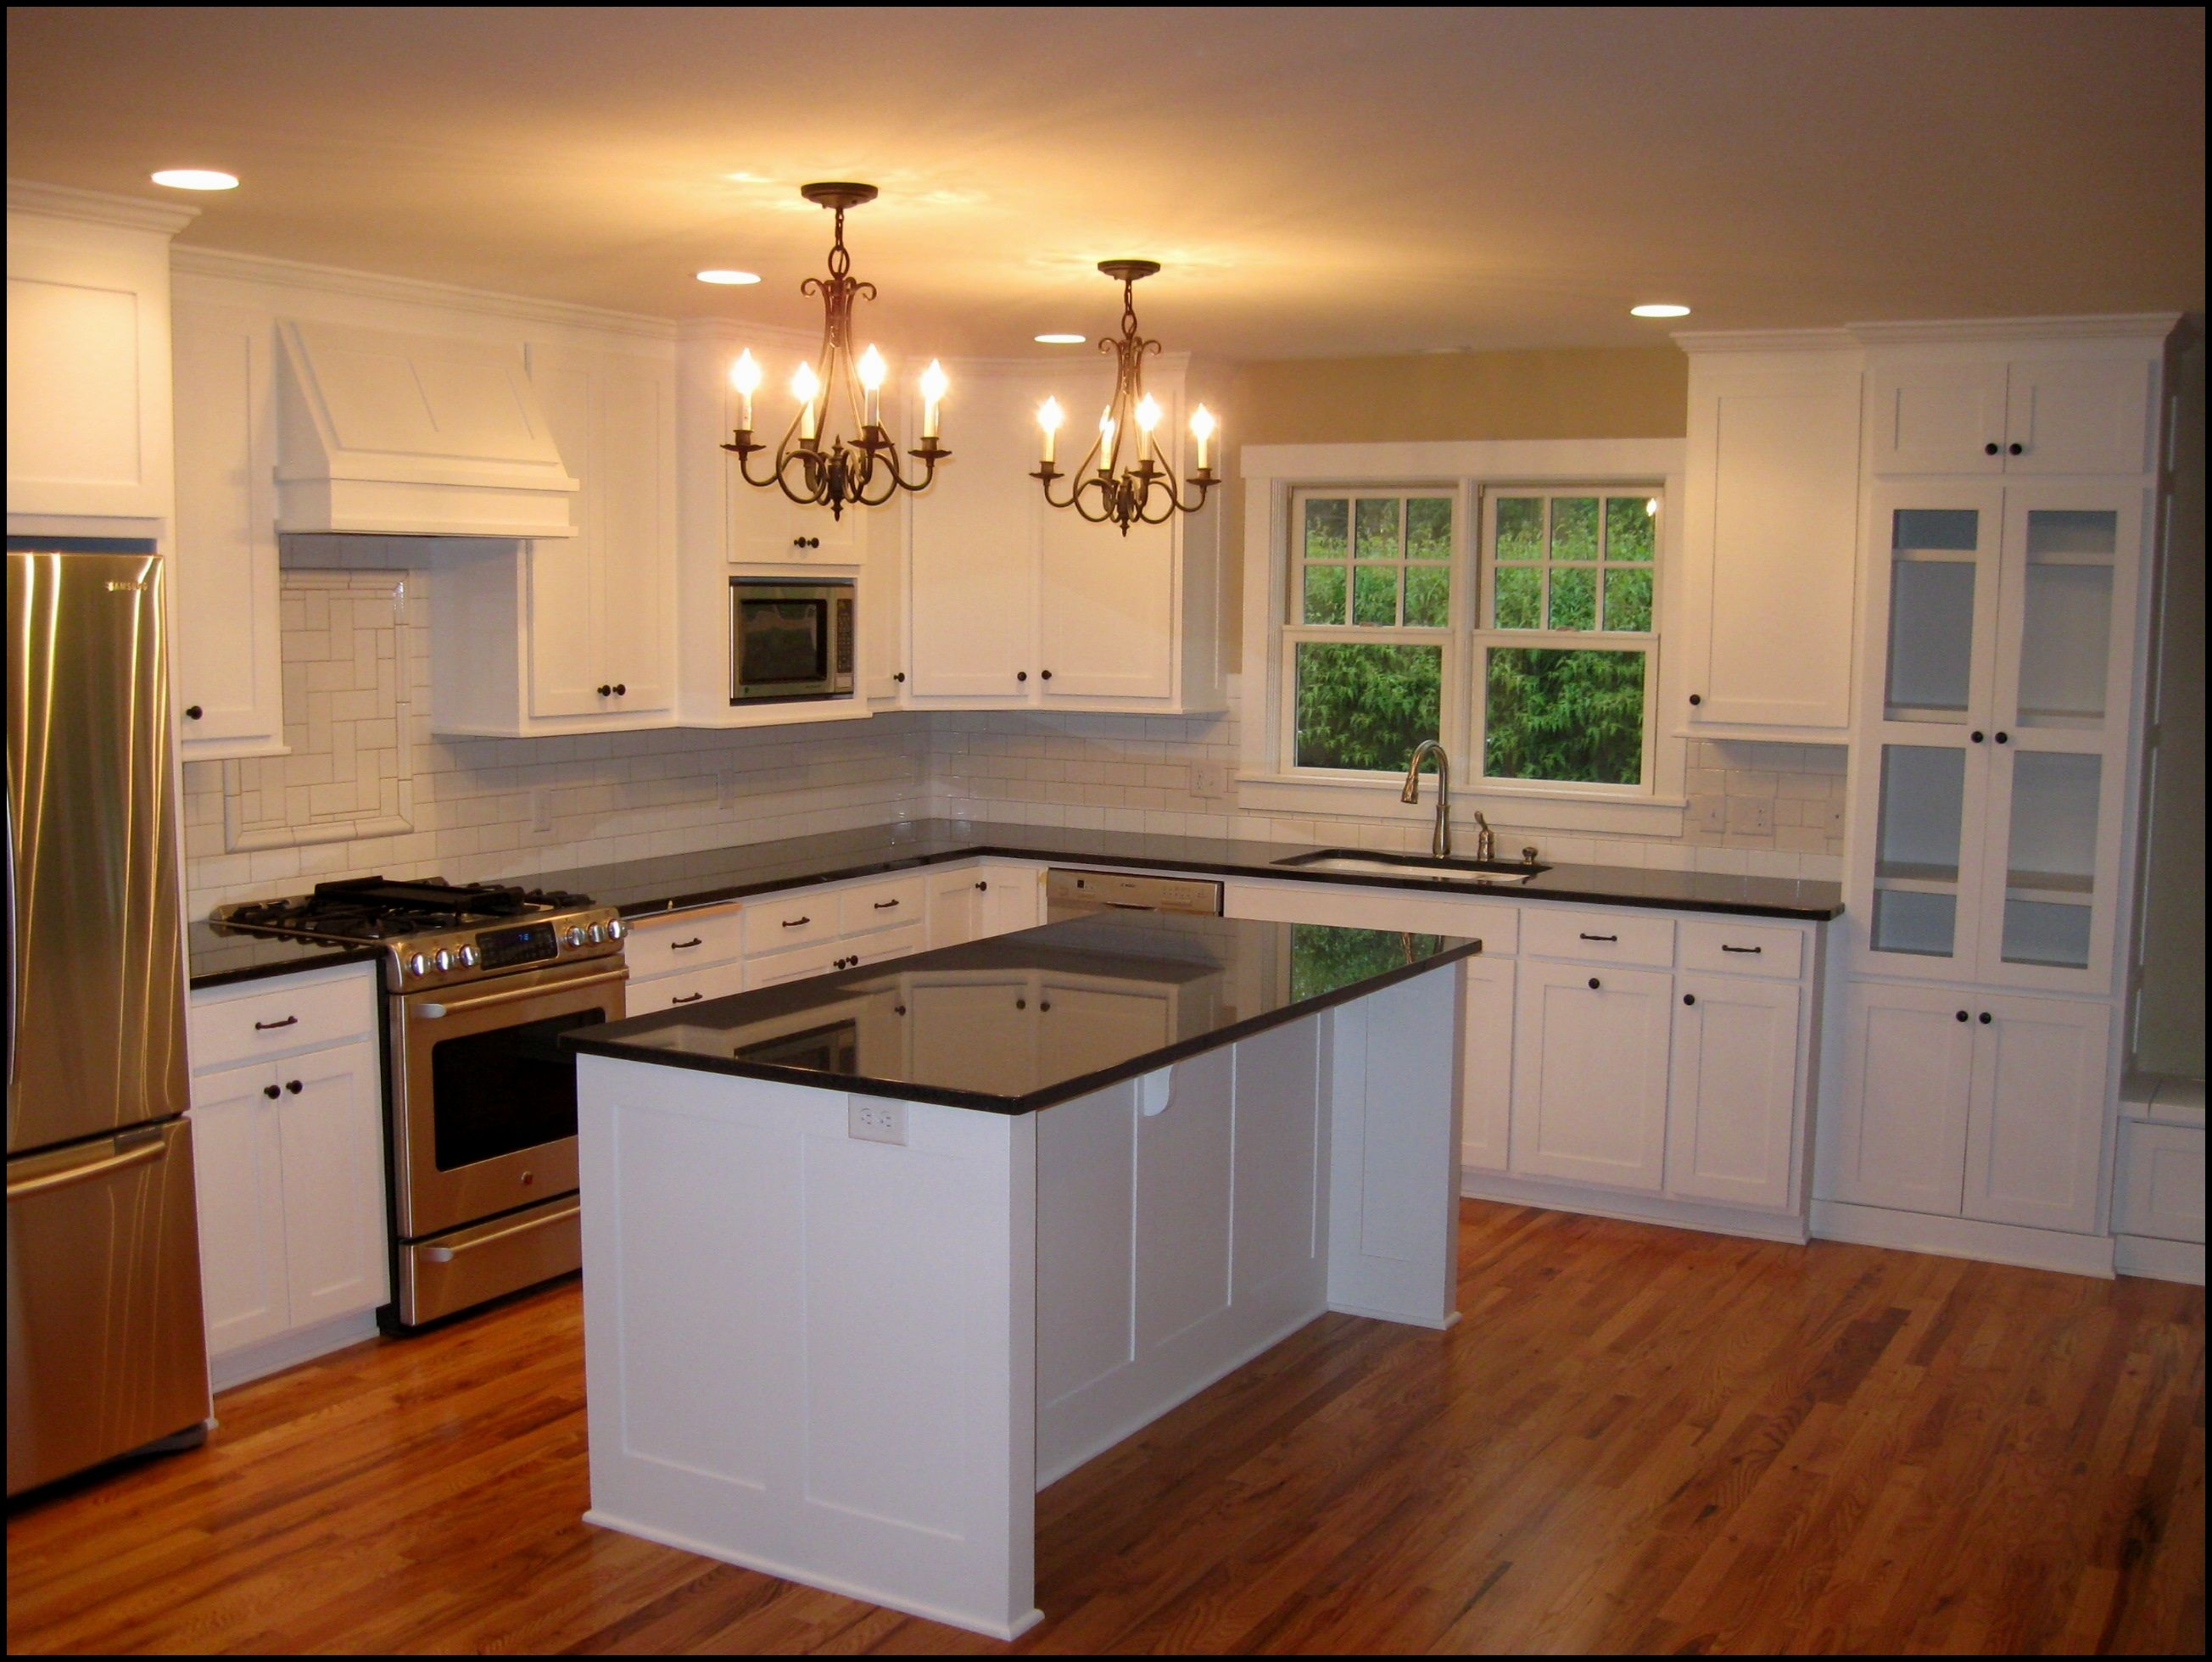 Best Rated Kitchen Cabinet Companies